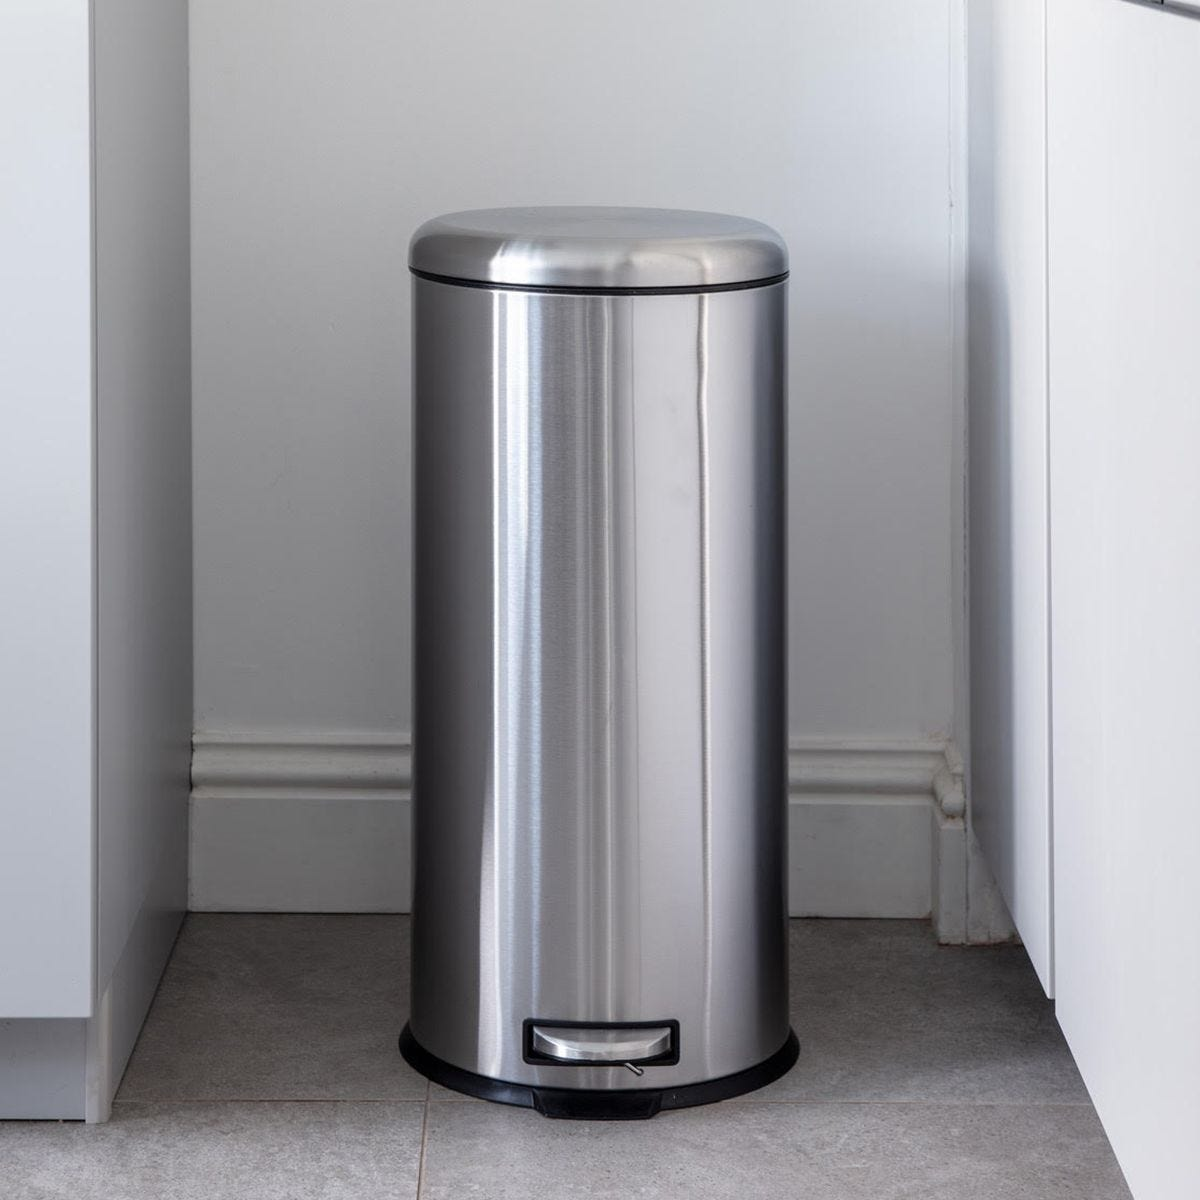 Addis 30L Stainless Steel Round Pedal Bin - Silver